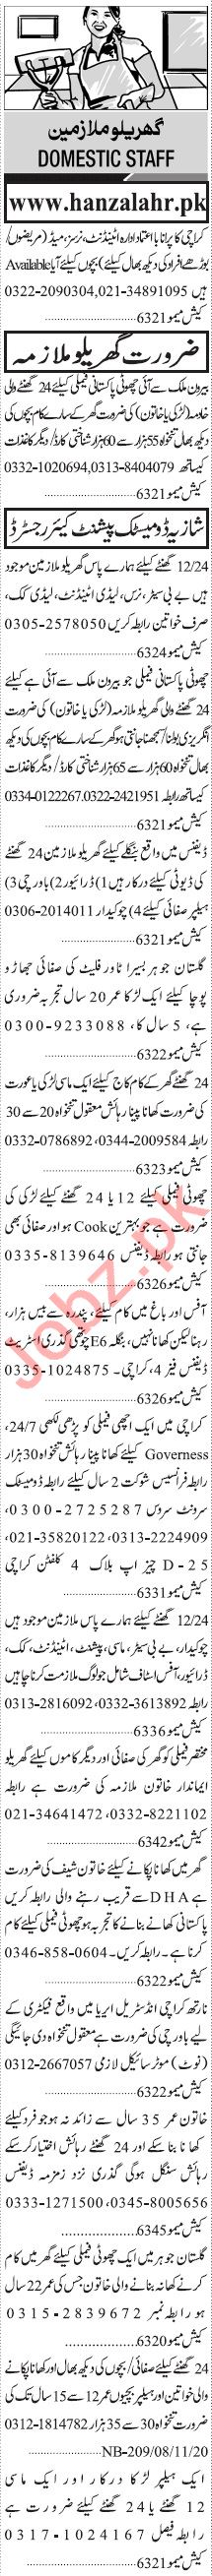 Jang Sunday Classified Ads 8th Nov 2020 for House Staff